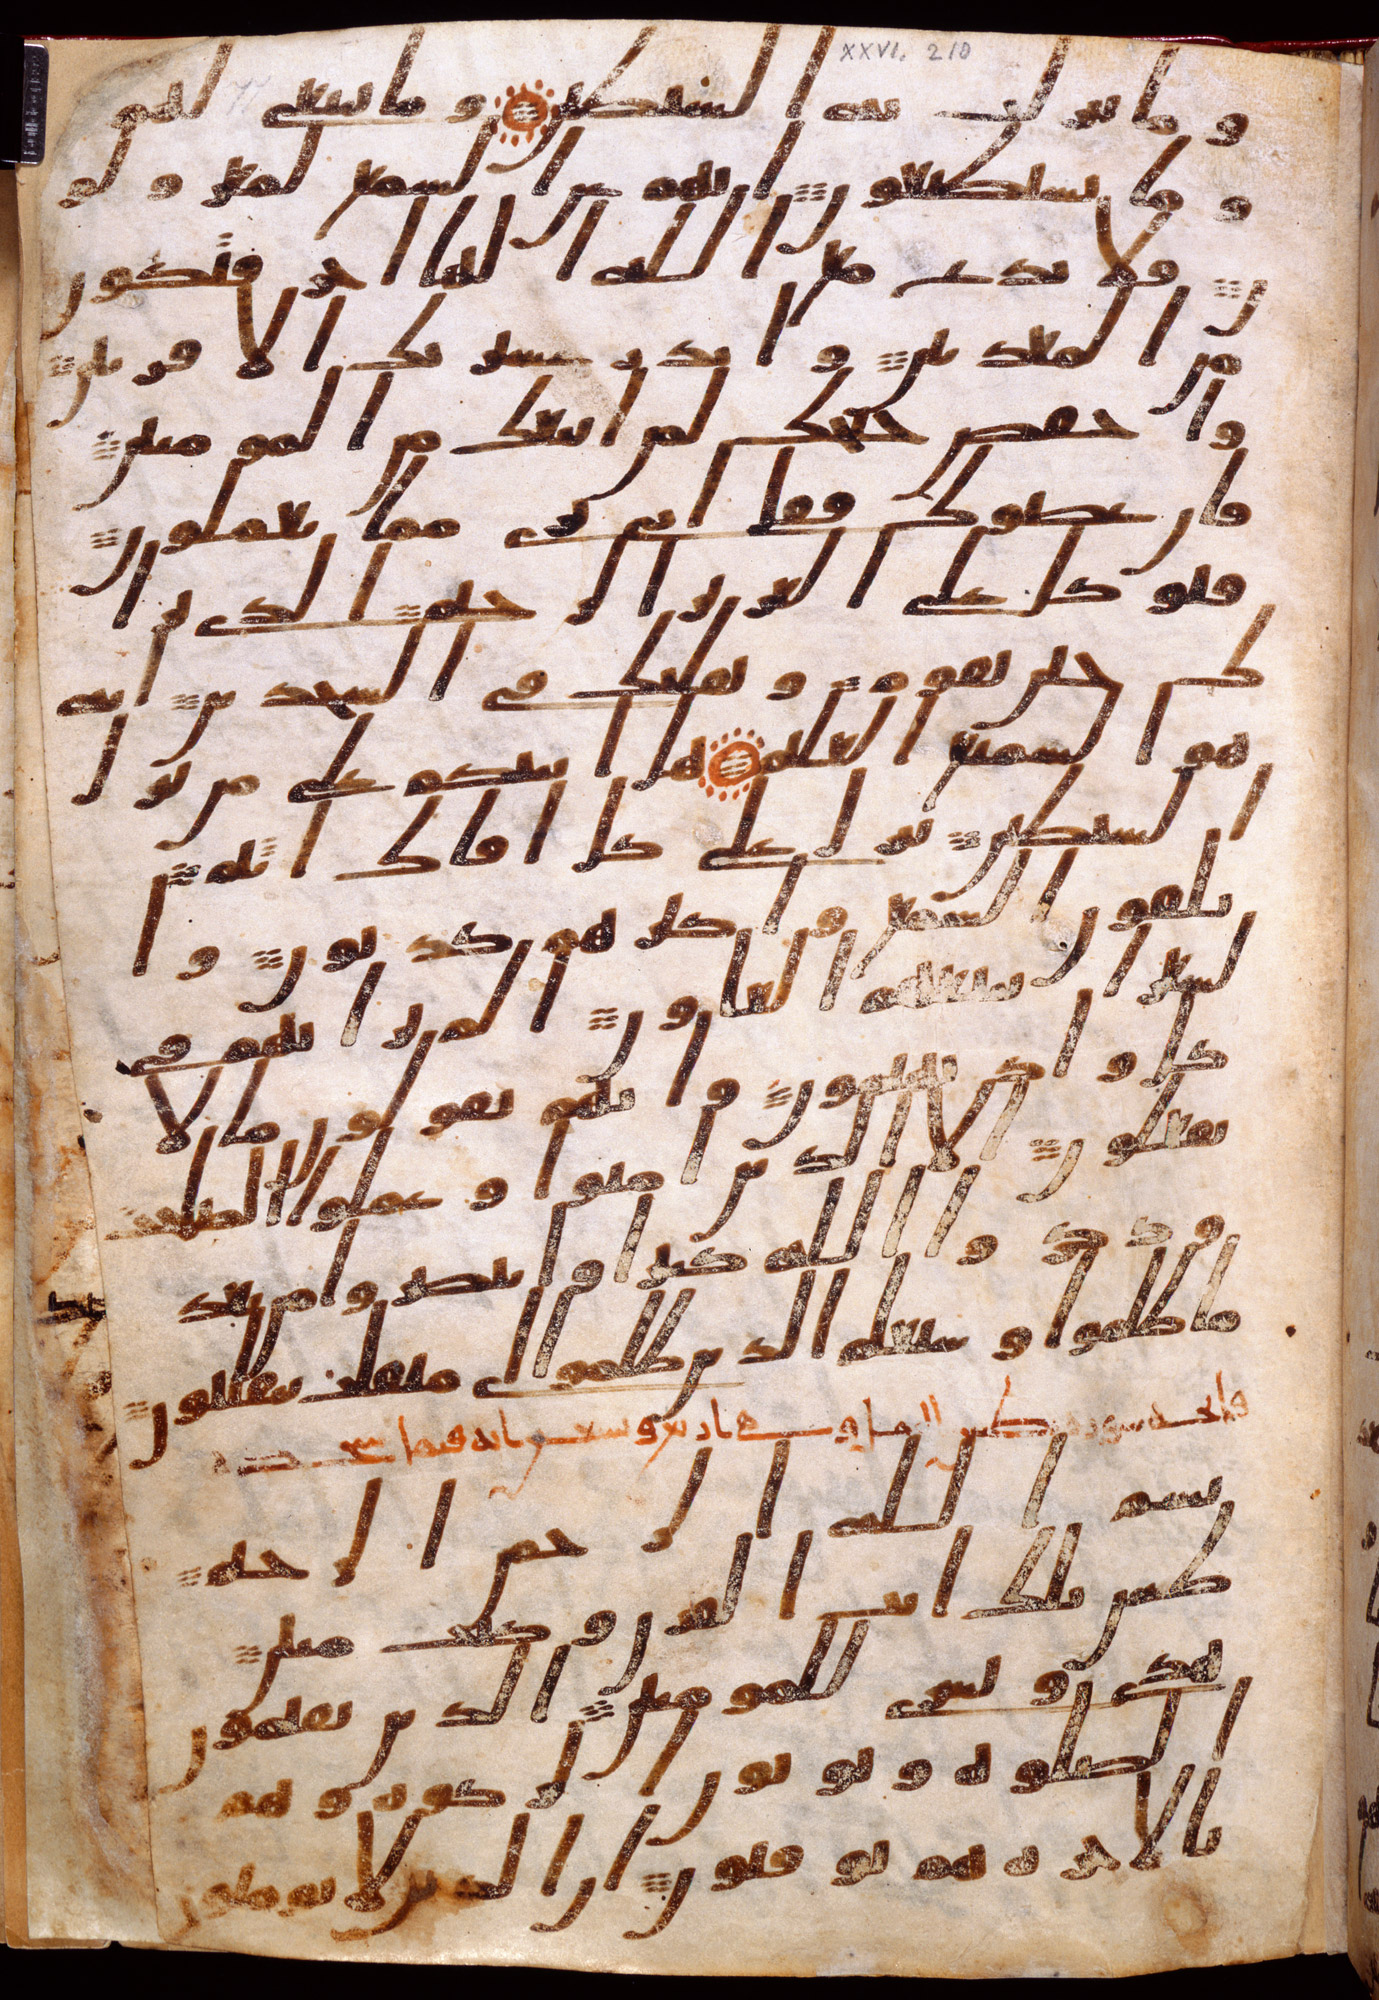 8th-century Ma'il Qur'an. The caligraphy is in a black or dark brown script, sloping across the page. There is minimal decoration, apart from some small red circles that denote the end of a verse.